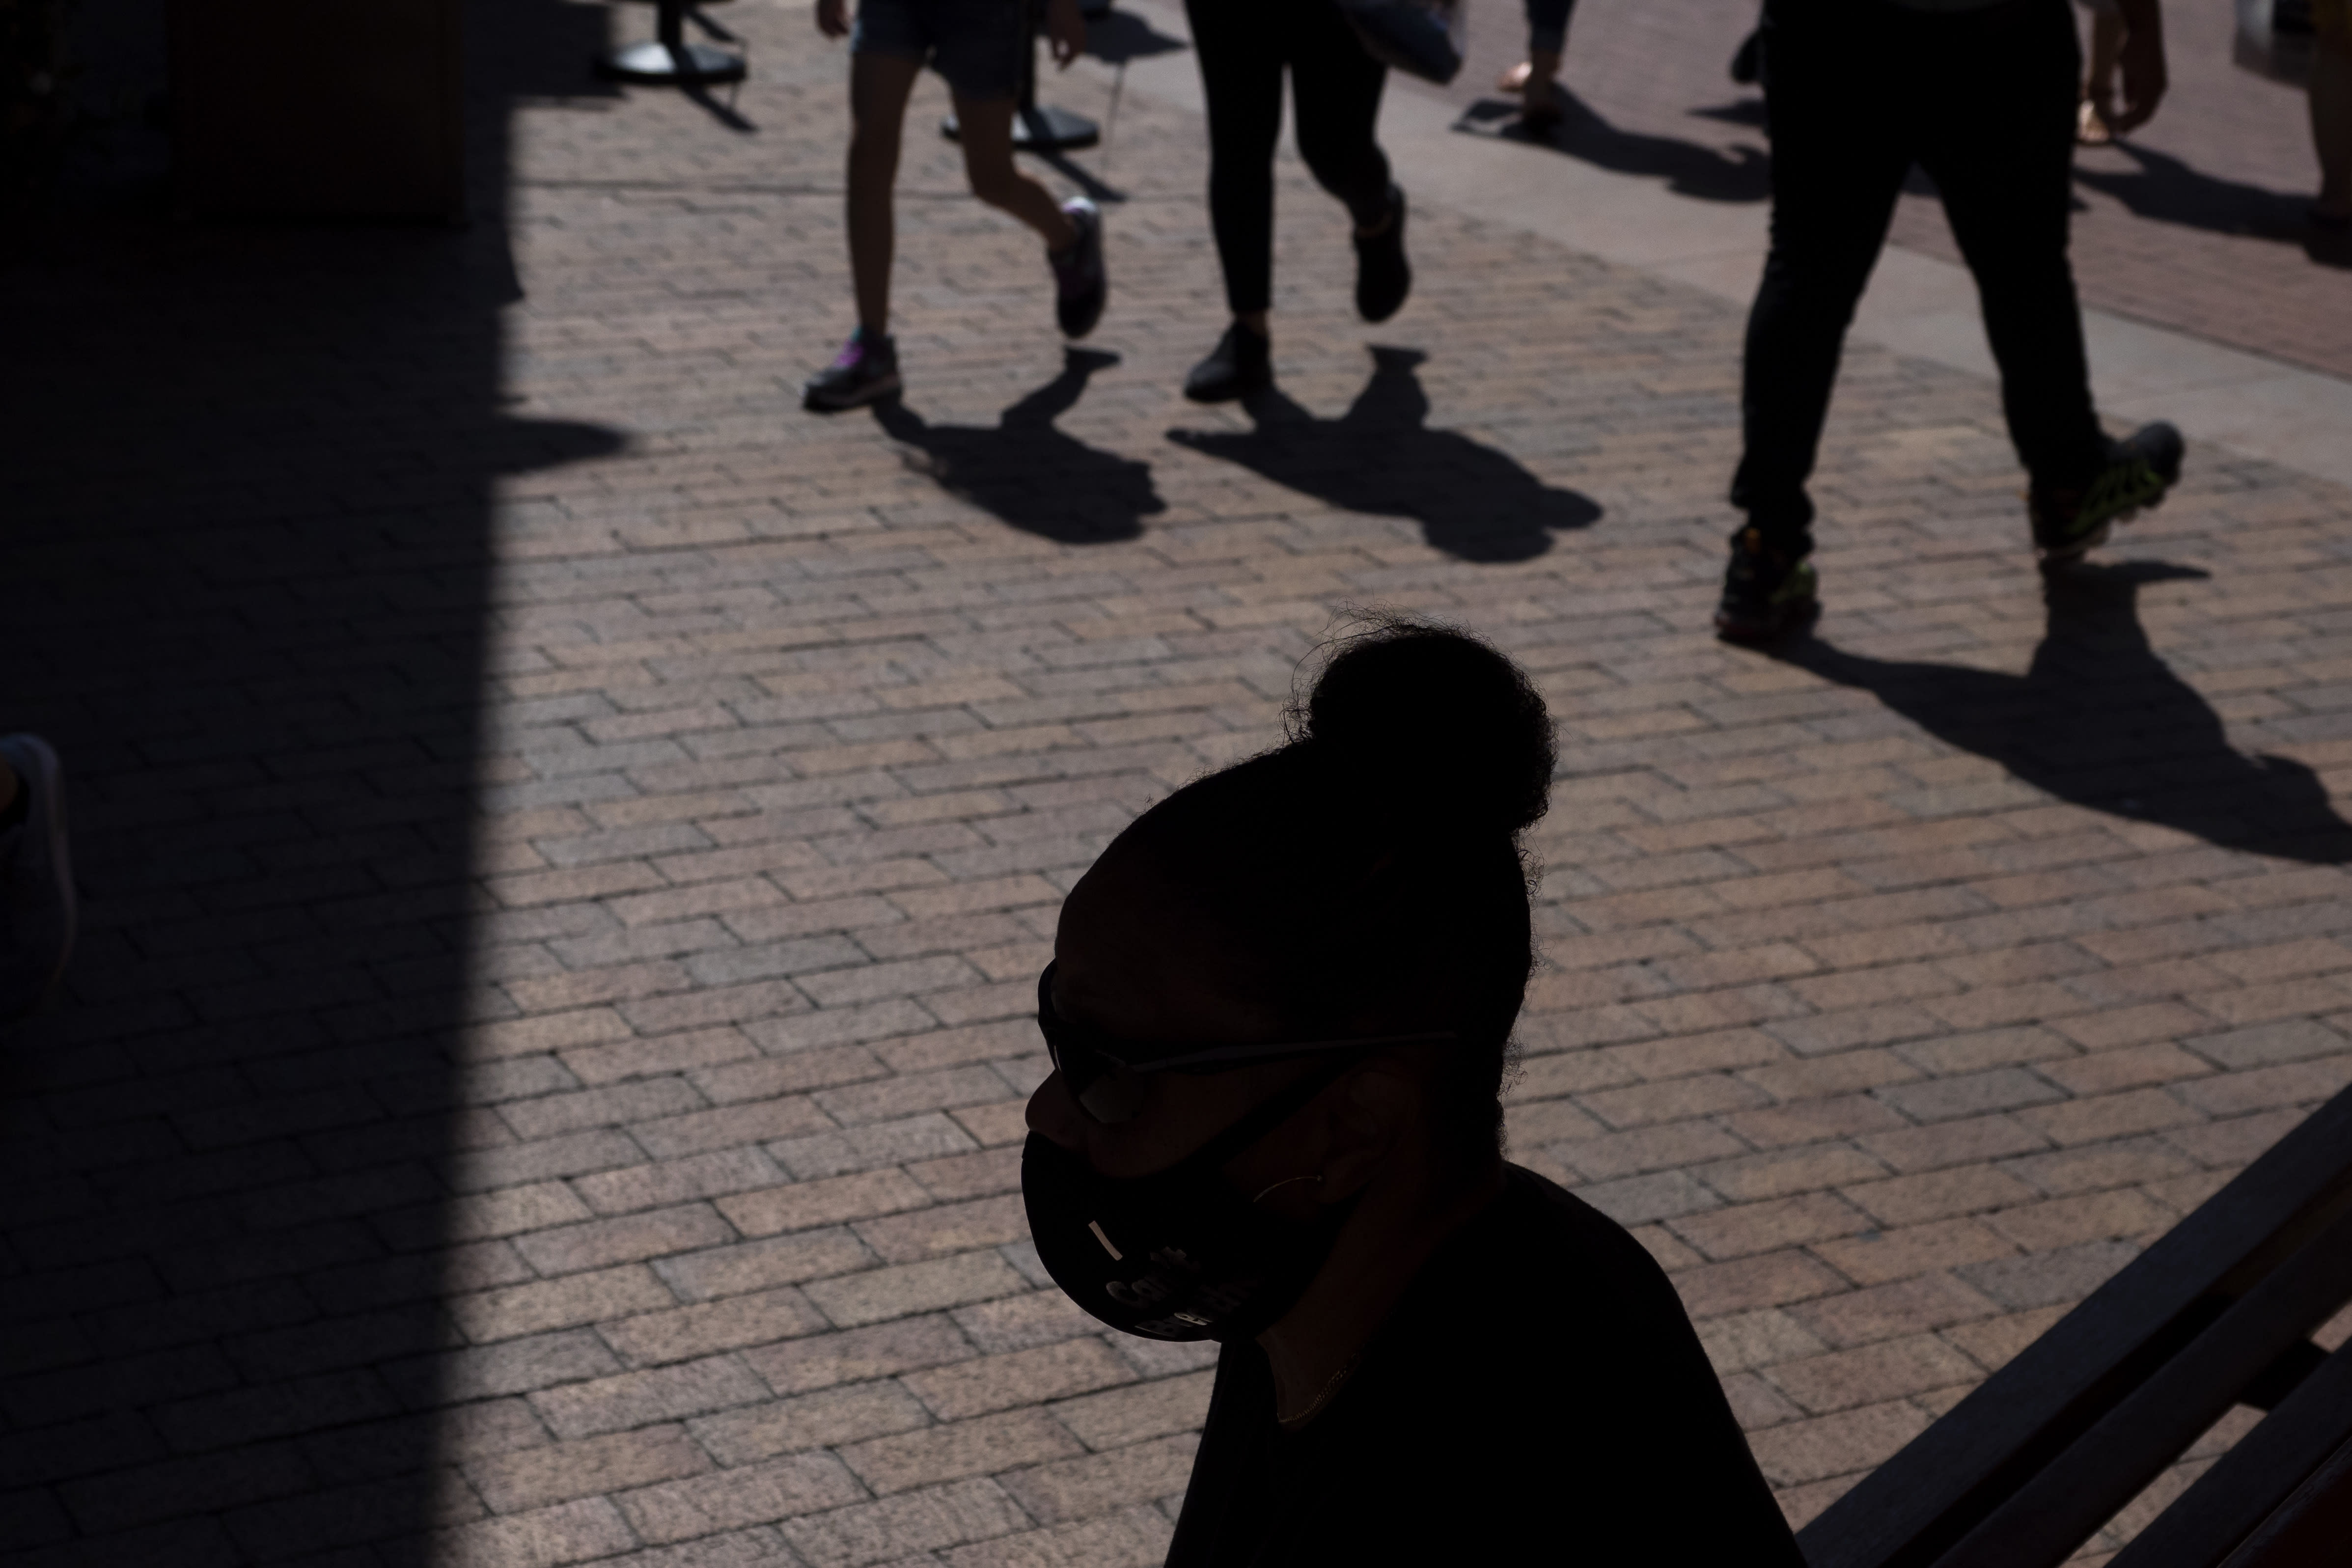 "A shopper wearing a face mask sits in the shade at the Citadel Outlets in Commerce, Calif., Thursday, July 2, 2020. California Gov. Gavin Newsom on Thursday urged Californians to turn to their ""better angels"" and use common sense over the holiday weekend by wearing a mask and skipping traditional gatherings with family and friends. (AP Photo/Jae C. Hong)"